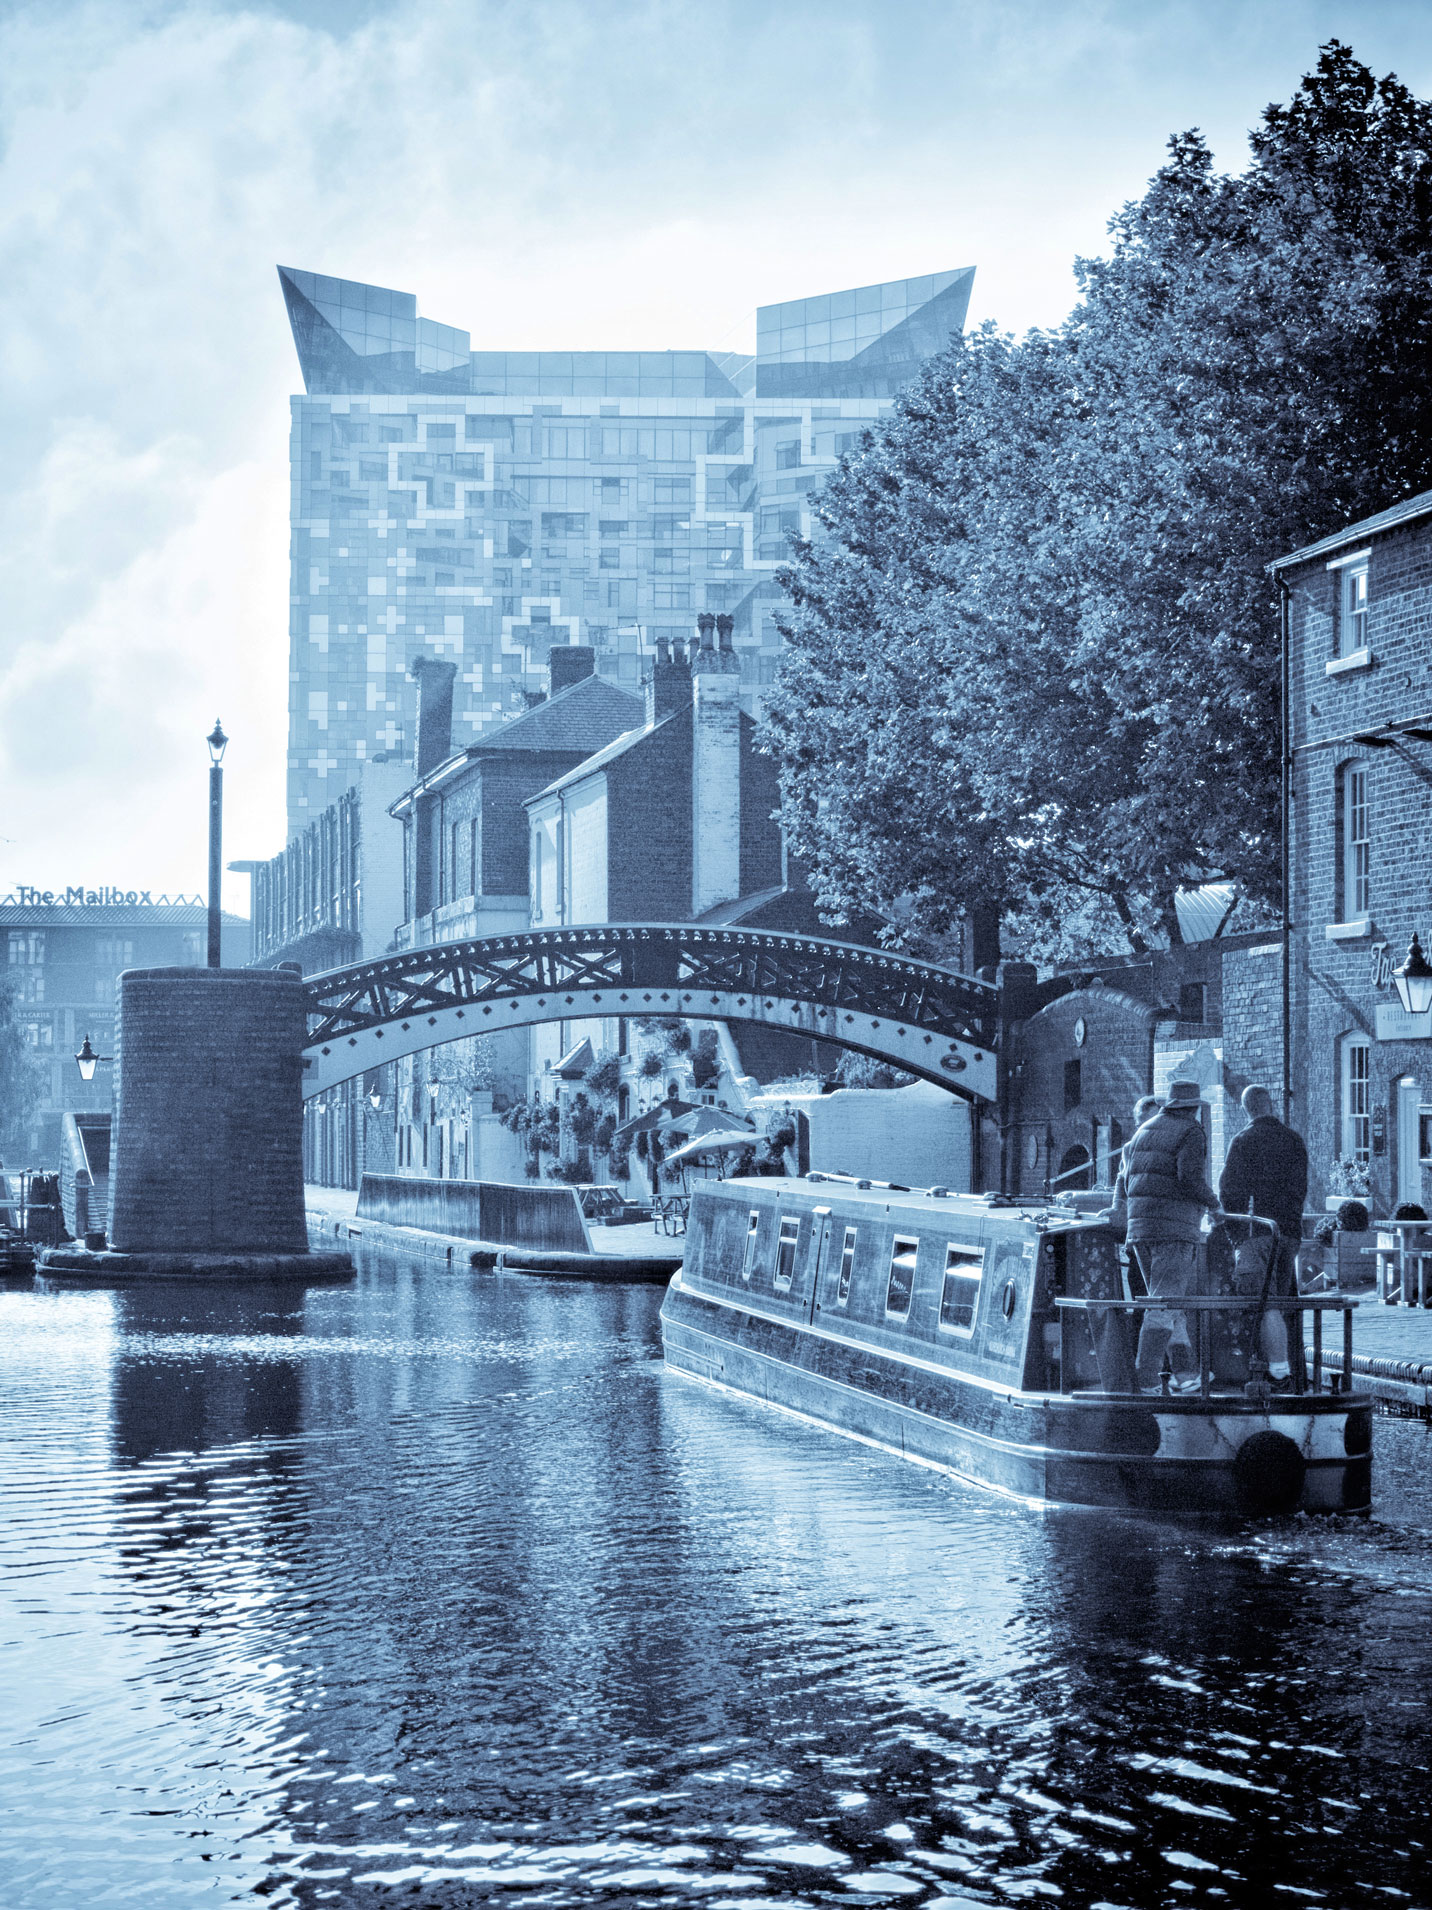 The Cube, The Mailbox and Gas Street Basin